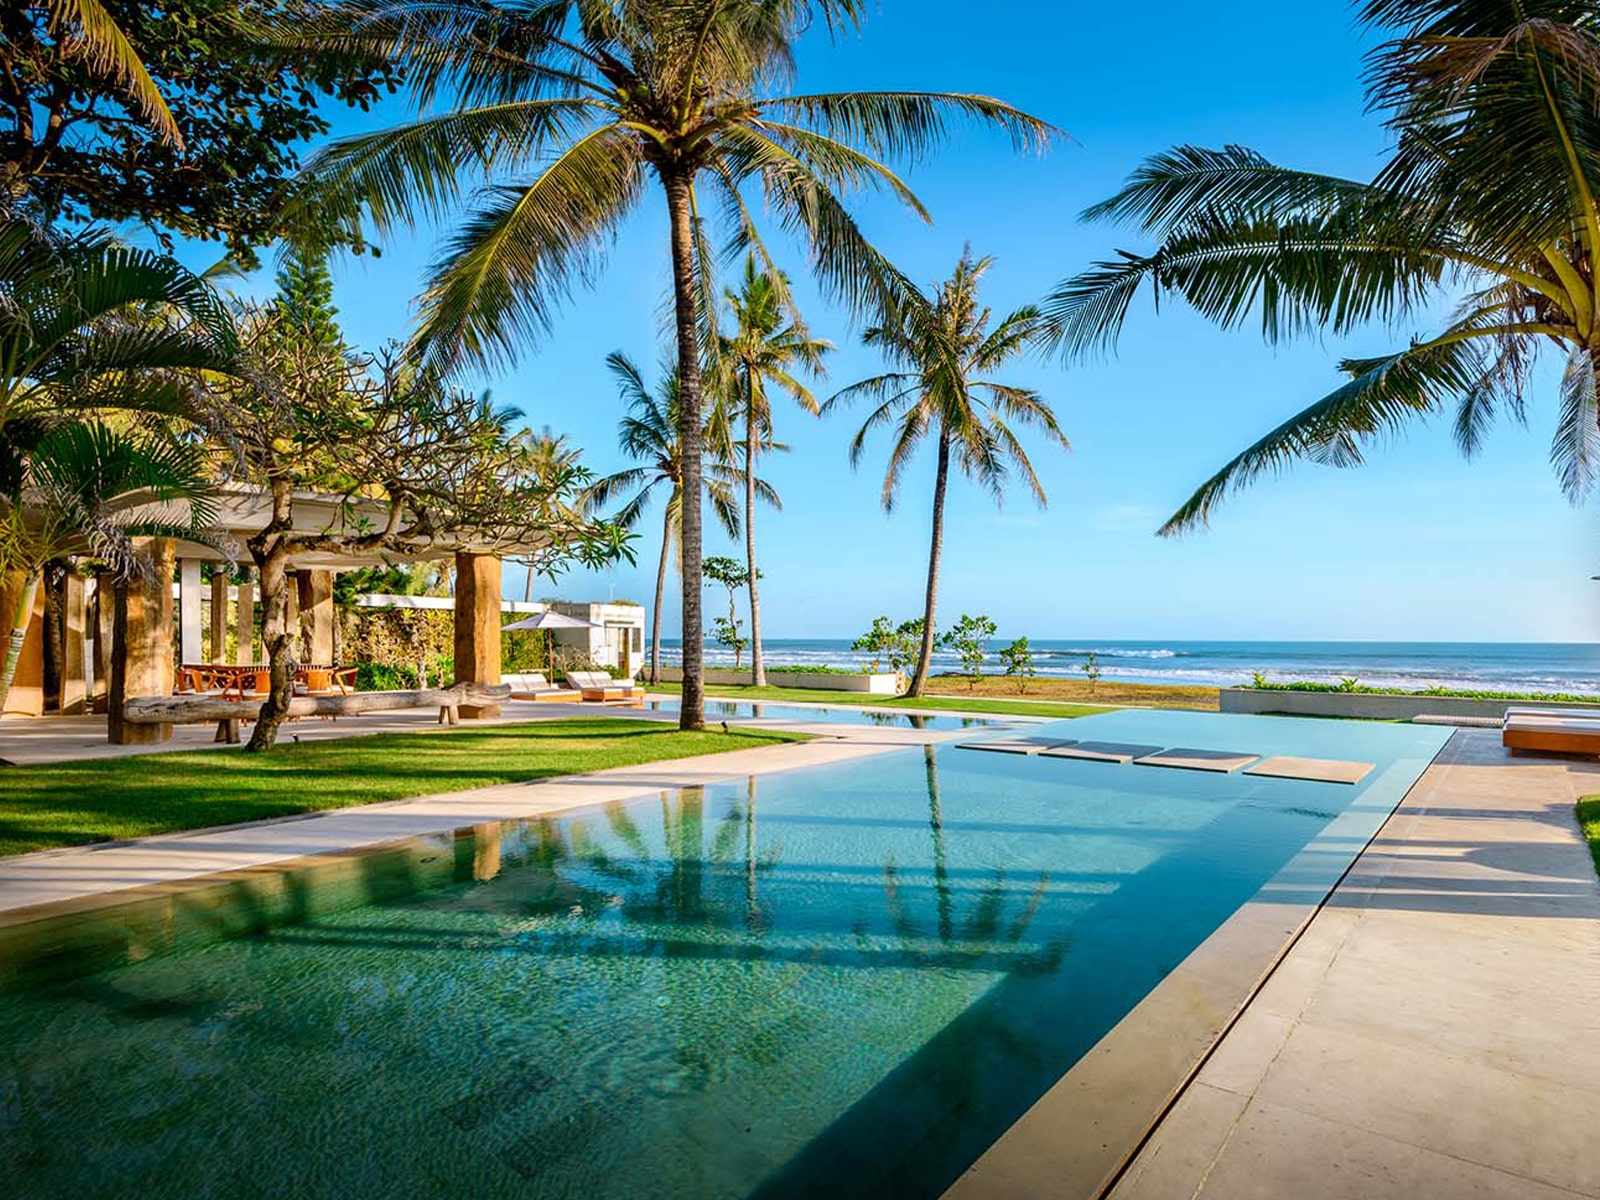 affordable accommodation in bali